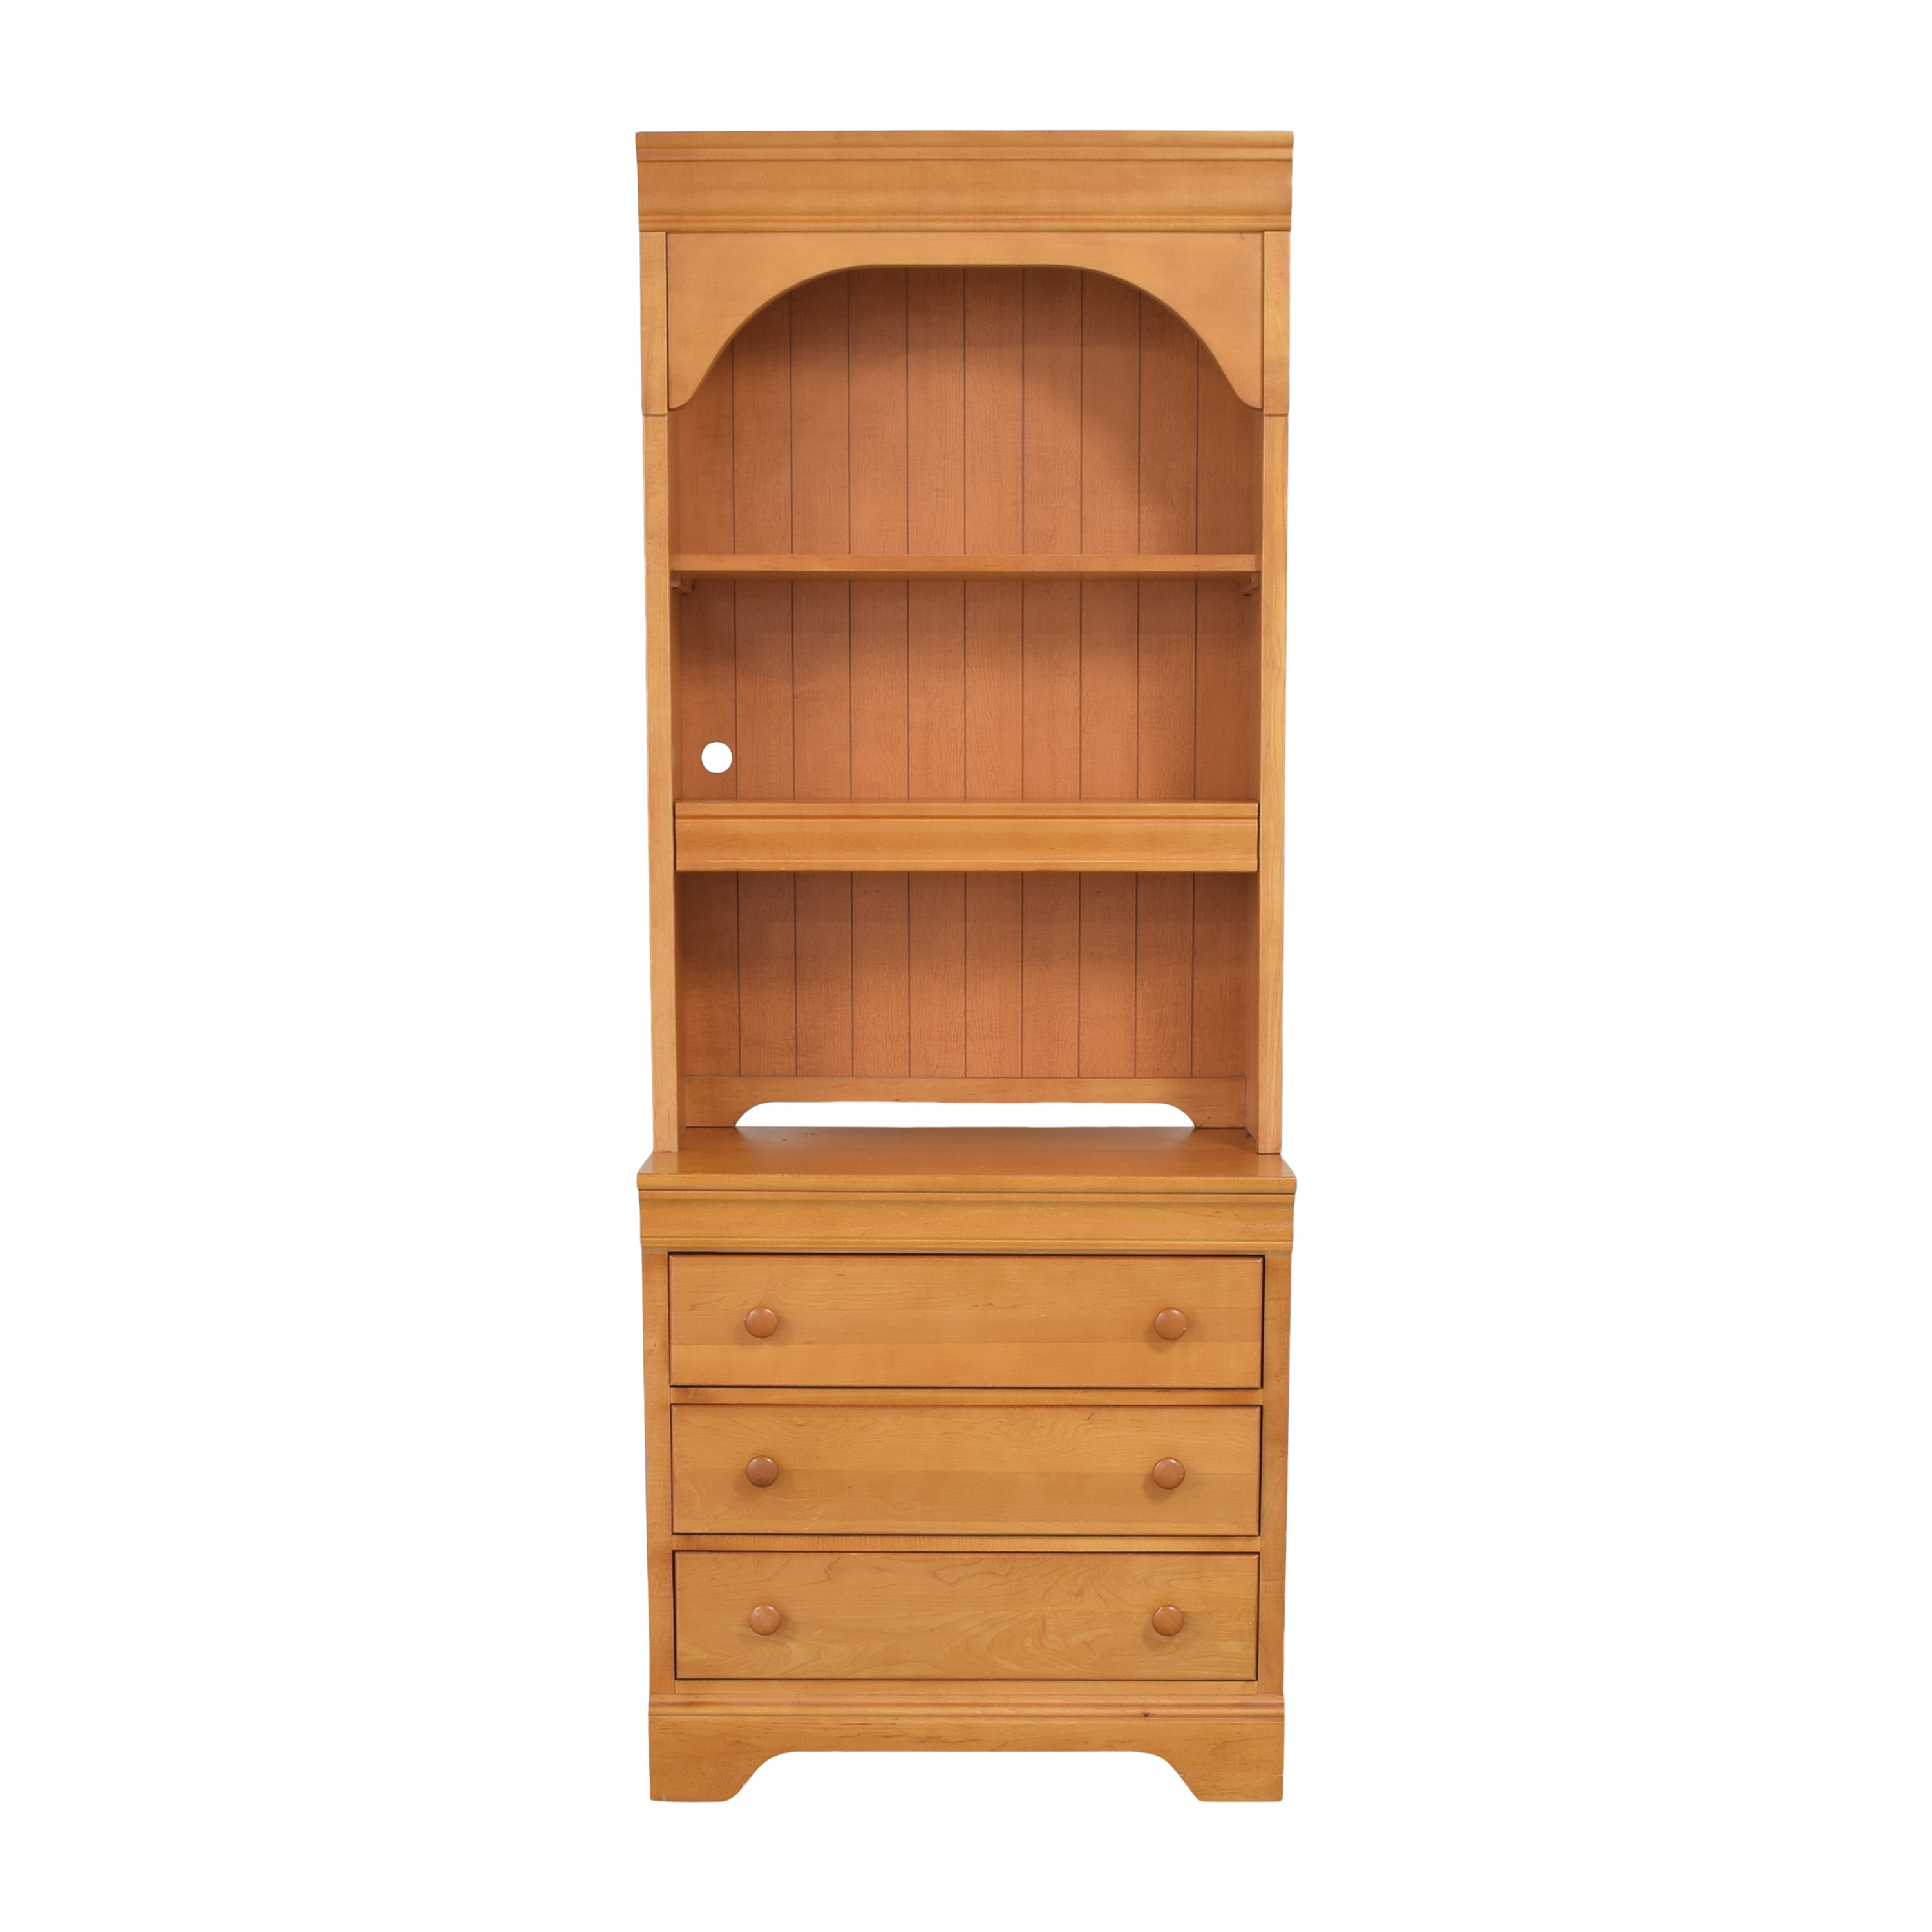 Stanley Young America Dresser with Hutch / Storage